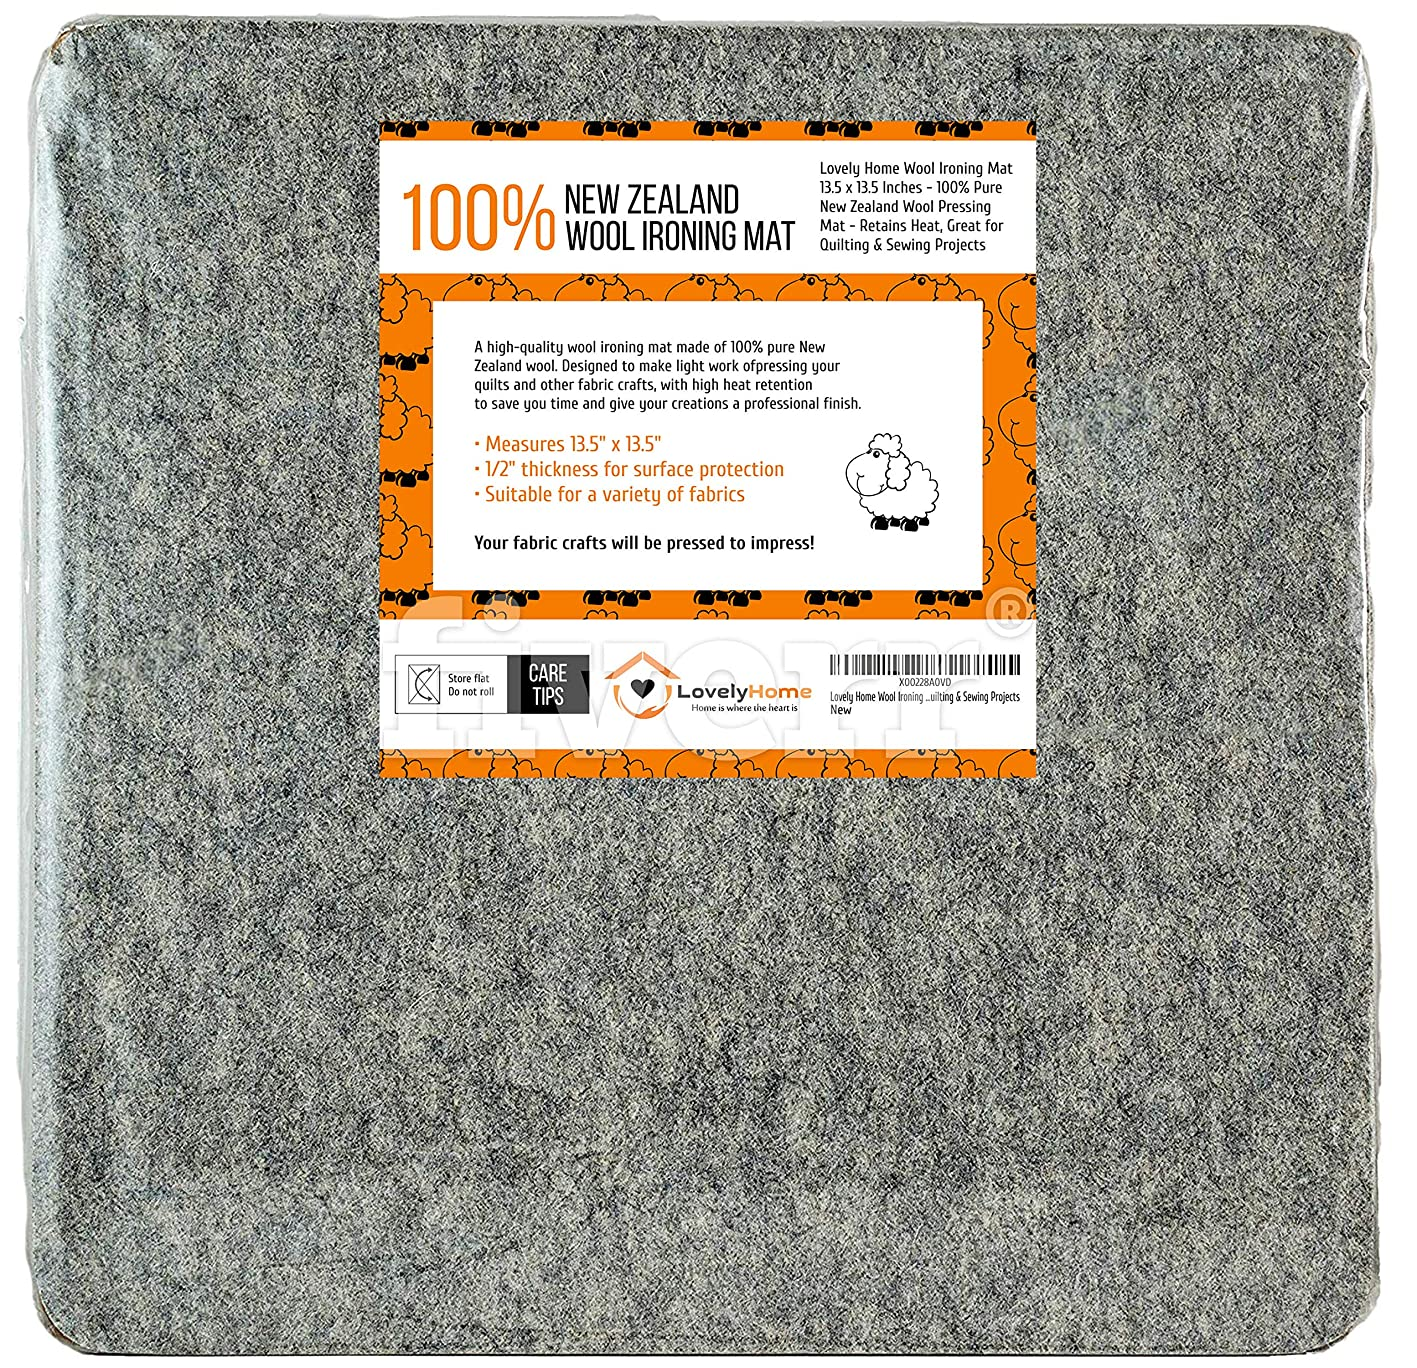 Lovely Home Wool Ironing Mat 13.5 x 13.5 Inches - 100% Pure New Zealand Wool Pressing Mat - Retains Heat, Great for Quilting & Sewing Projects gefmqyemjyw198